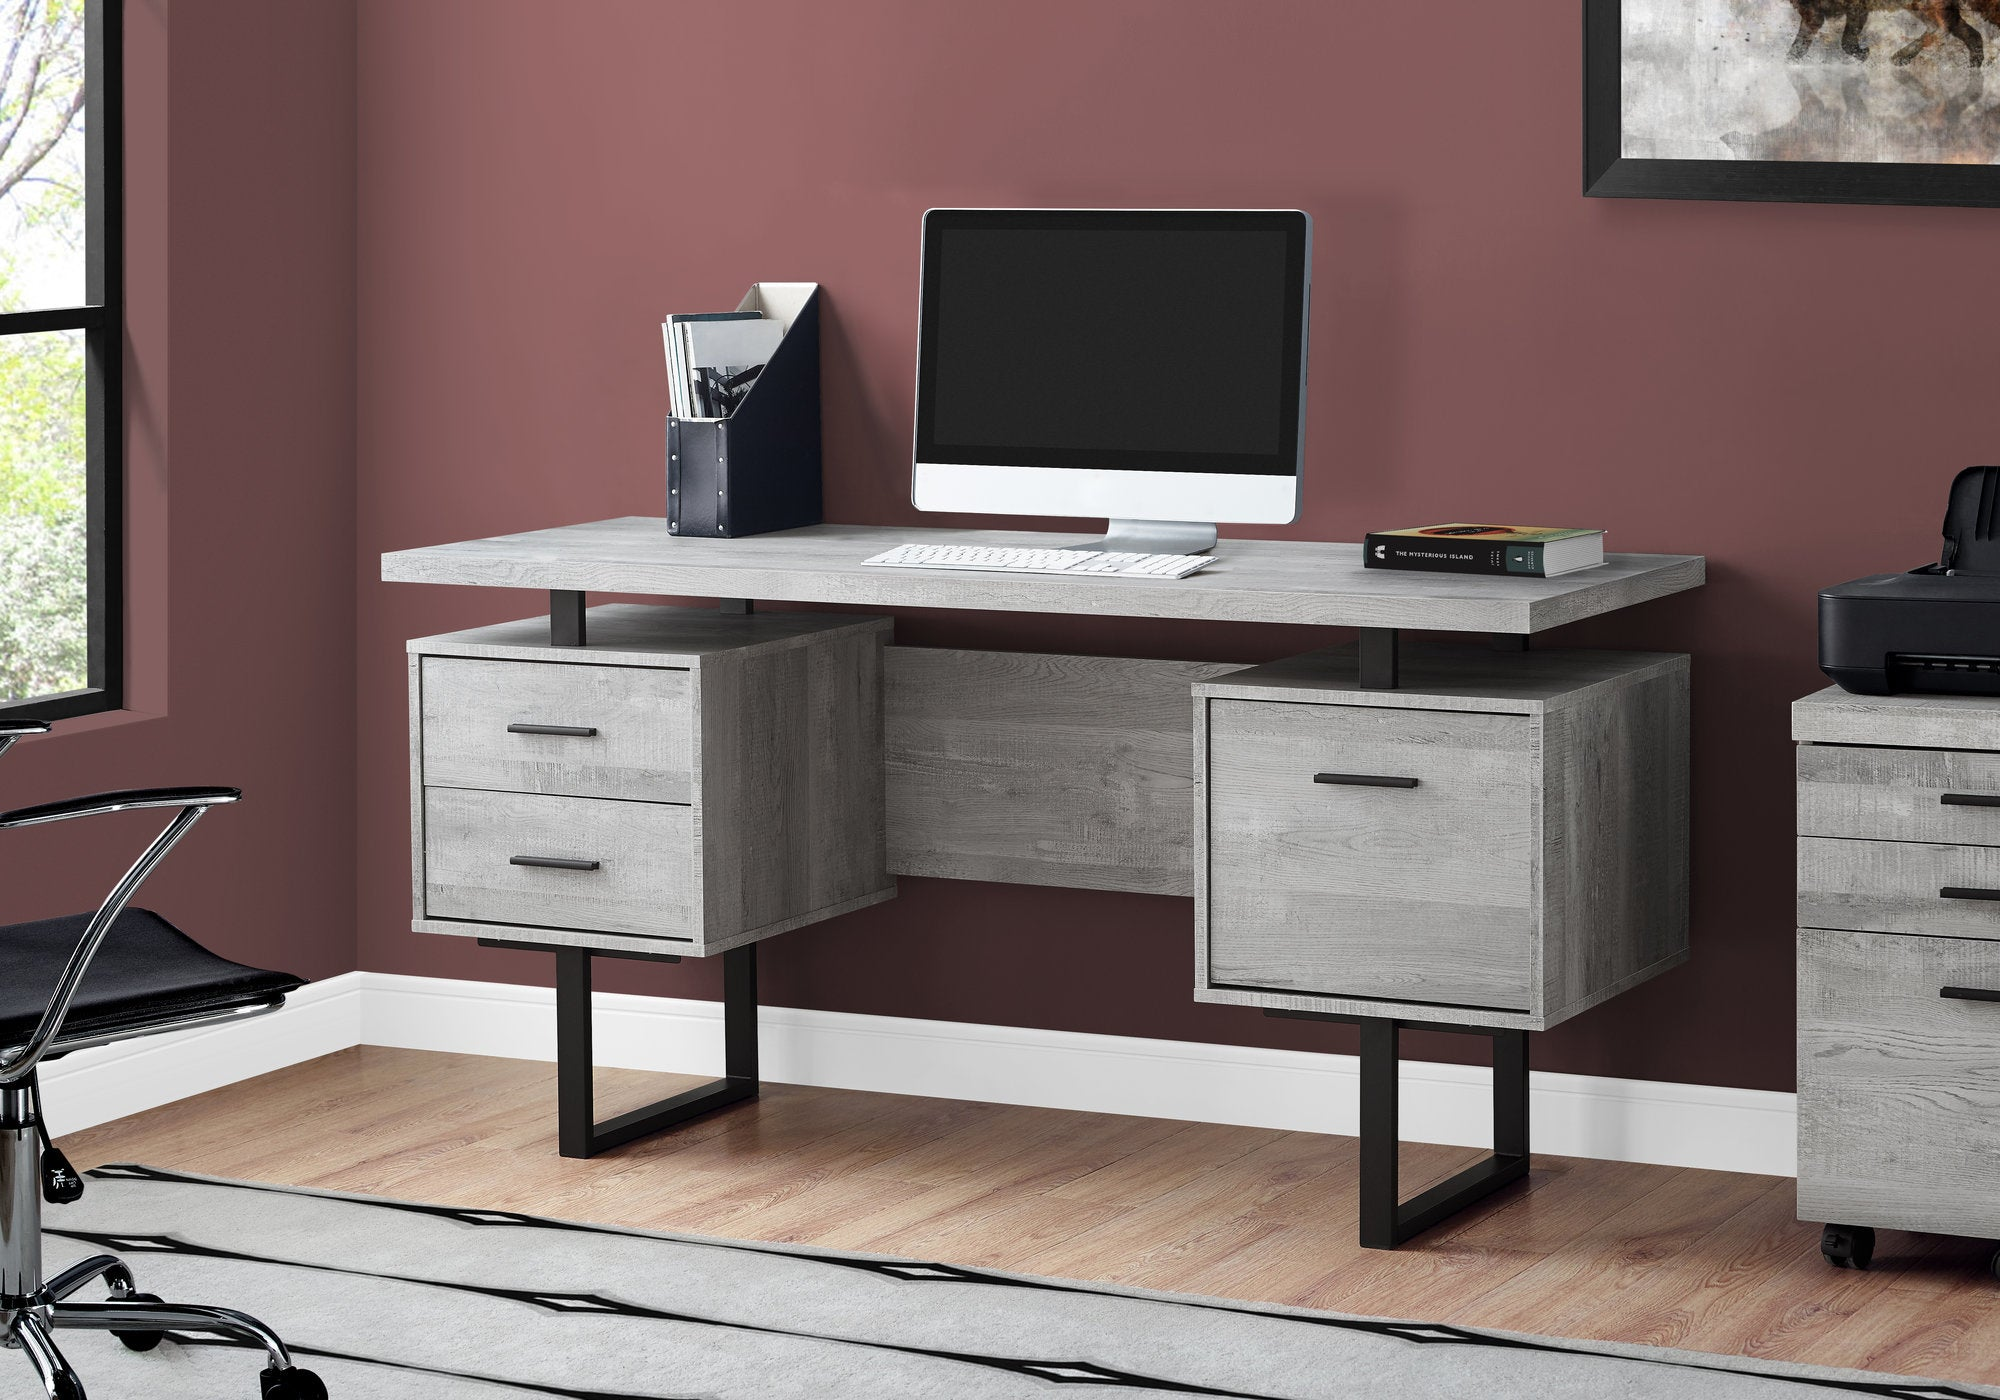 Durable Grey Wood Grain & Black Metal Computer Desk